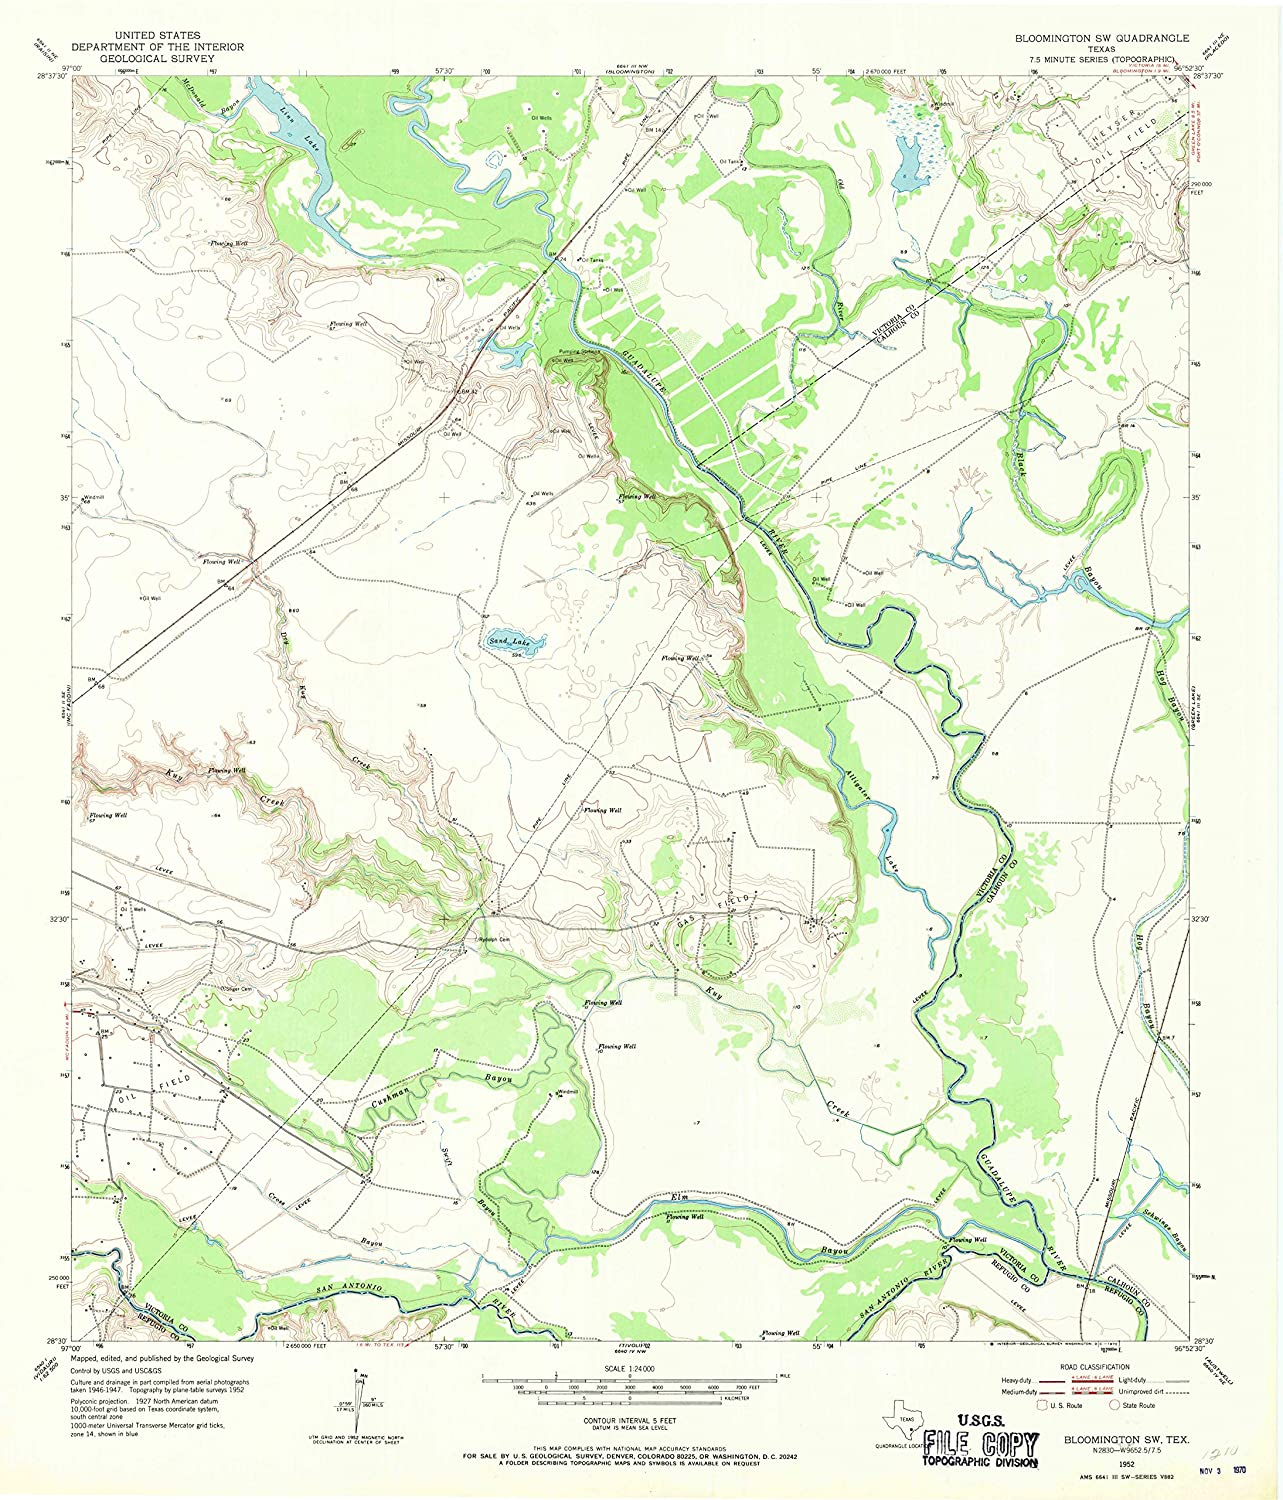 Map Print - Bloomington SW, Texas (1952), 1:24000 Scale - 24